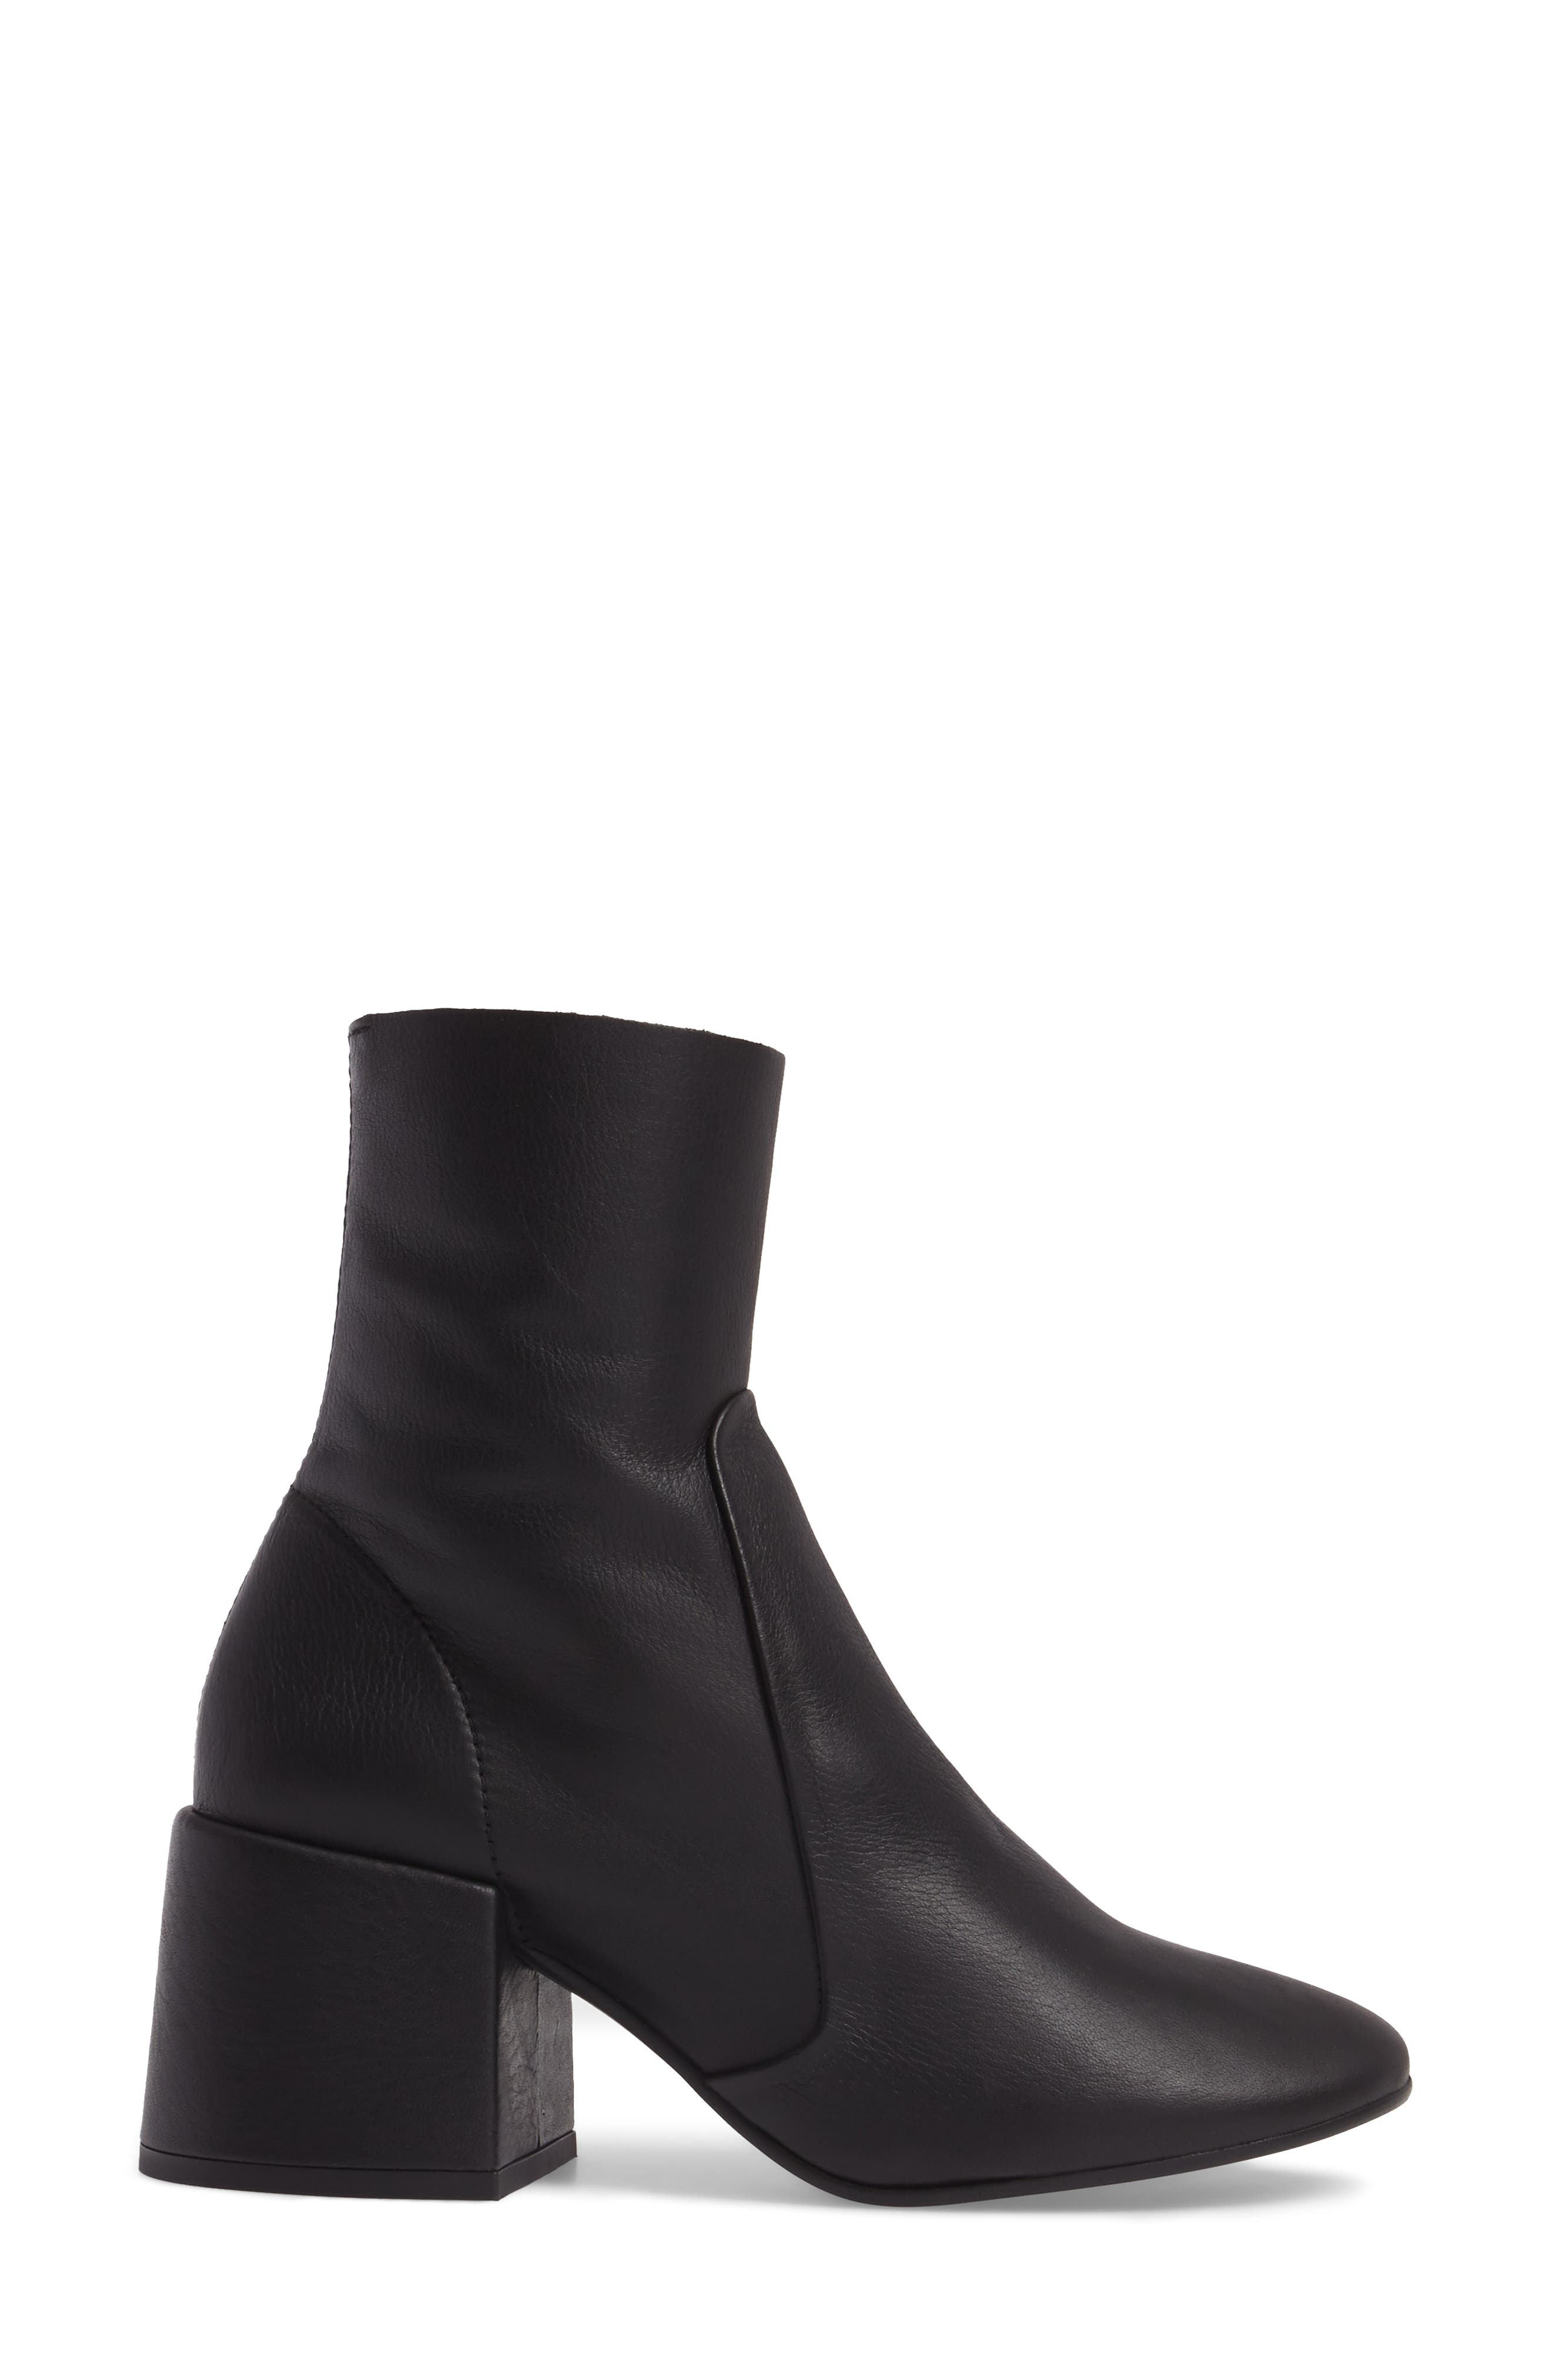 Ashcroft Bootie,                             Alternate thumbnail 3, color,                             Black